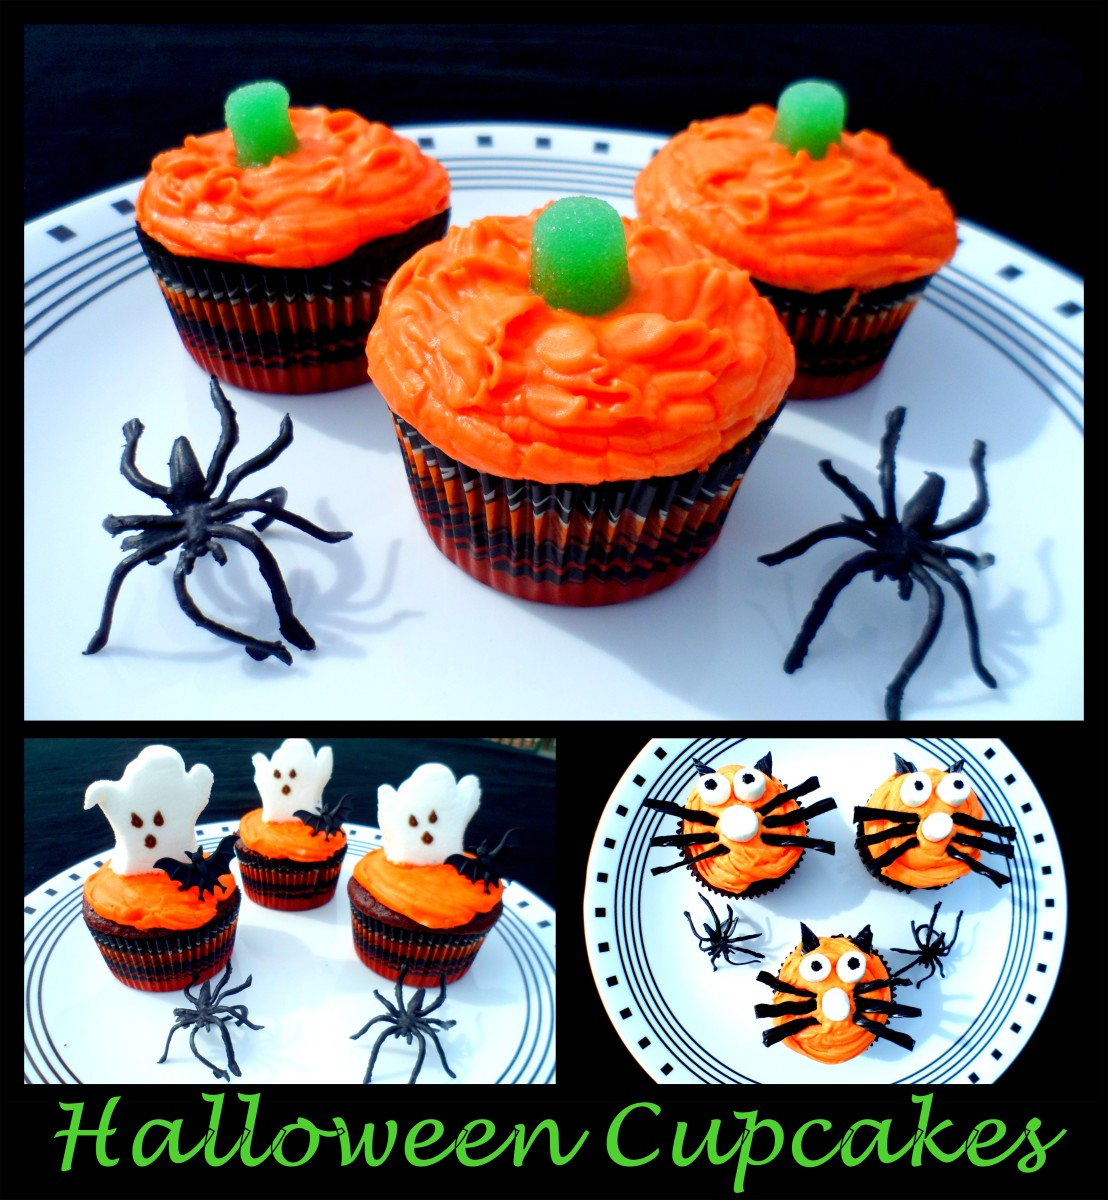 Halloween Cupcakes - Cupcake Decorating Ideas